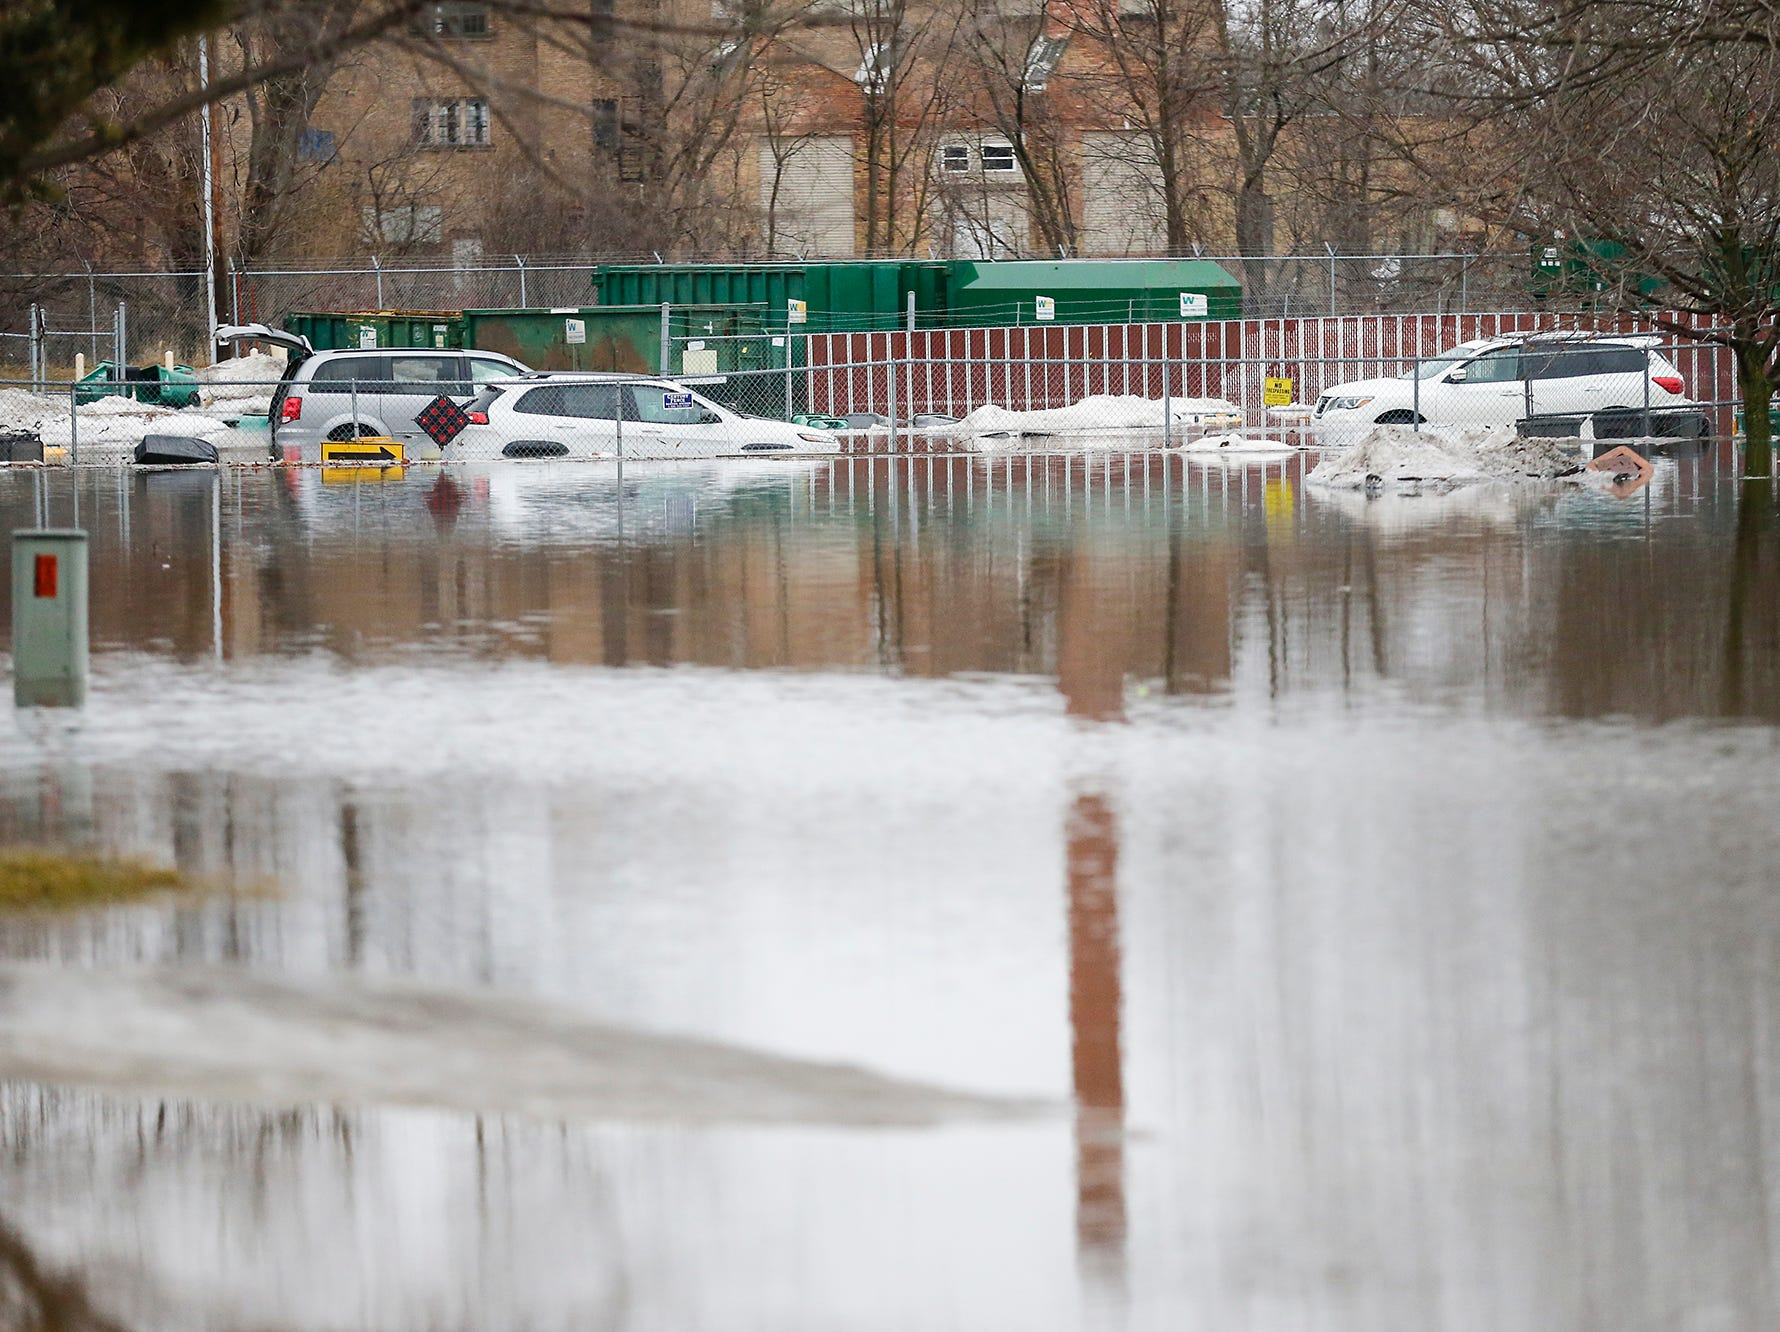 Cars ended up being partialy submerged in floodwaters Friday, March 15, 2019 in the Waste Management lot in Fond du Lac, Wis. Ice jams on the east branch of the Fond du Lac River and heavy rain caused widespread flooding problems in the city on Thursday the 14th. Doug Raflik/USA TODAY NETWORK-Wisconsin